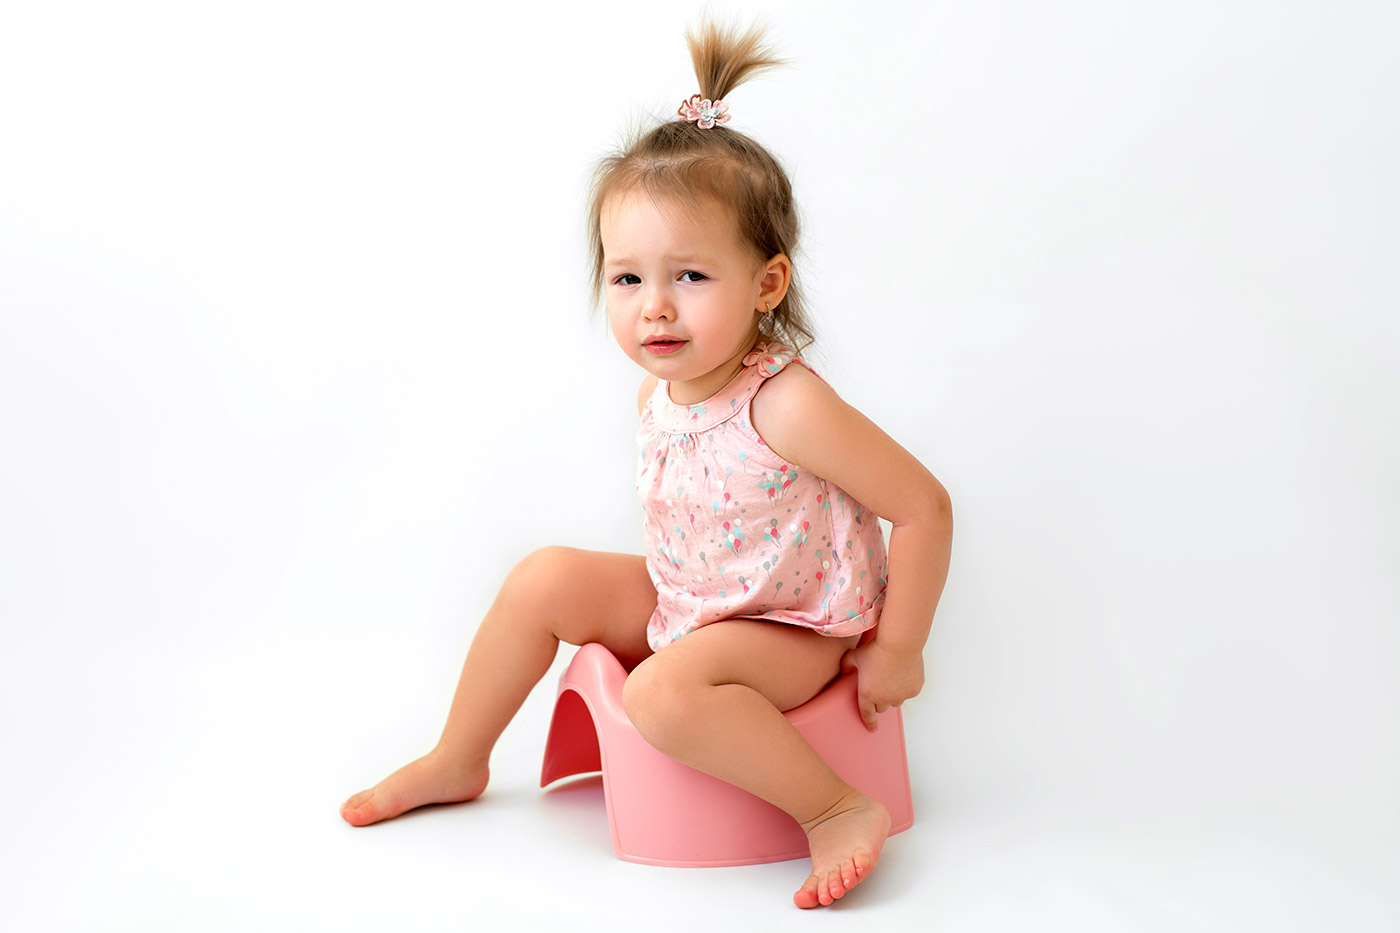 Signs Your Child Is Not Ready for Potty Training